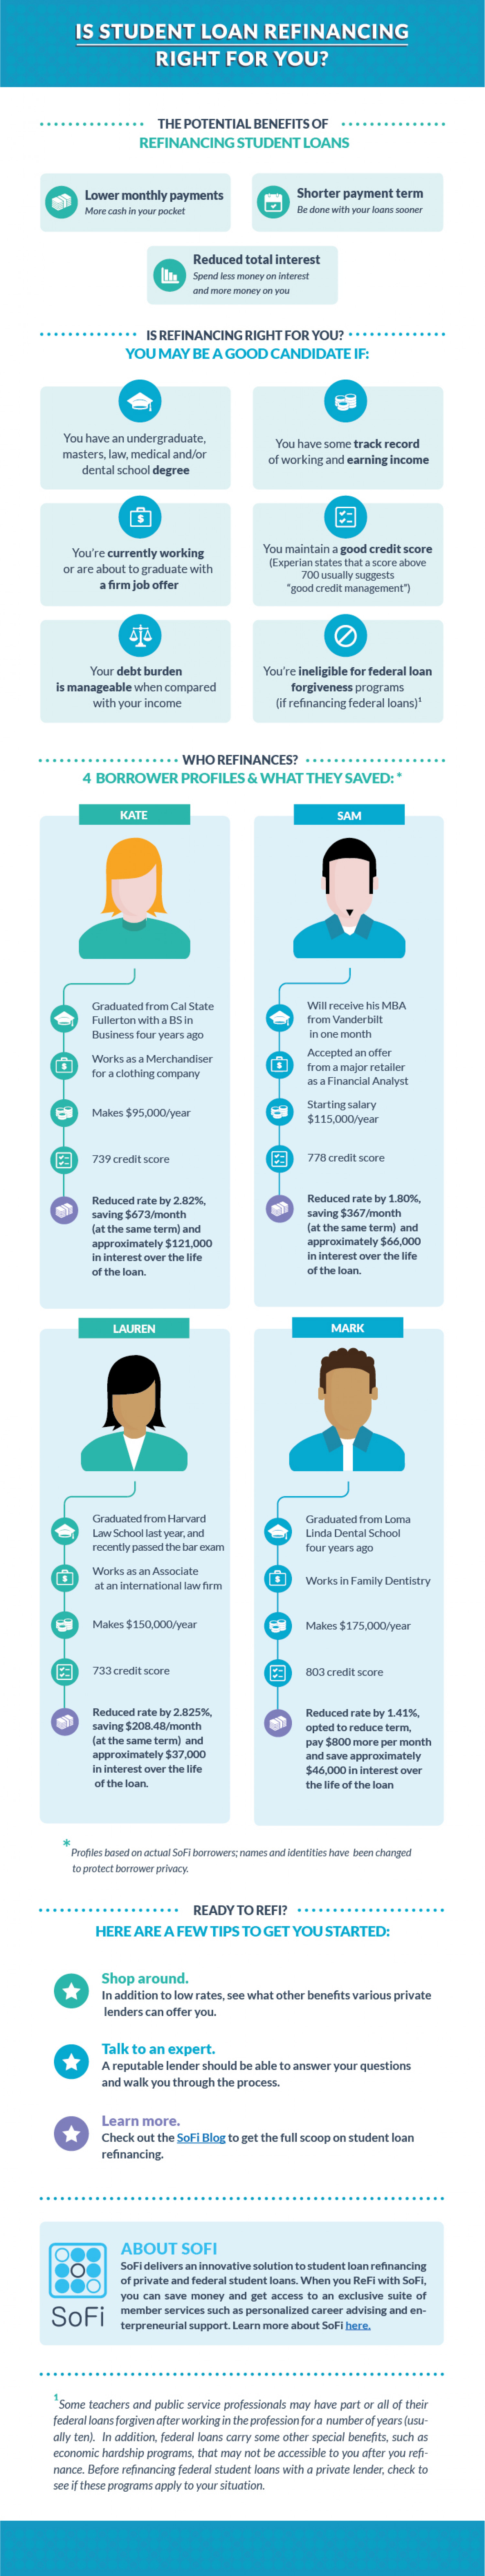 Student Loan Refinancing Infographic